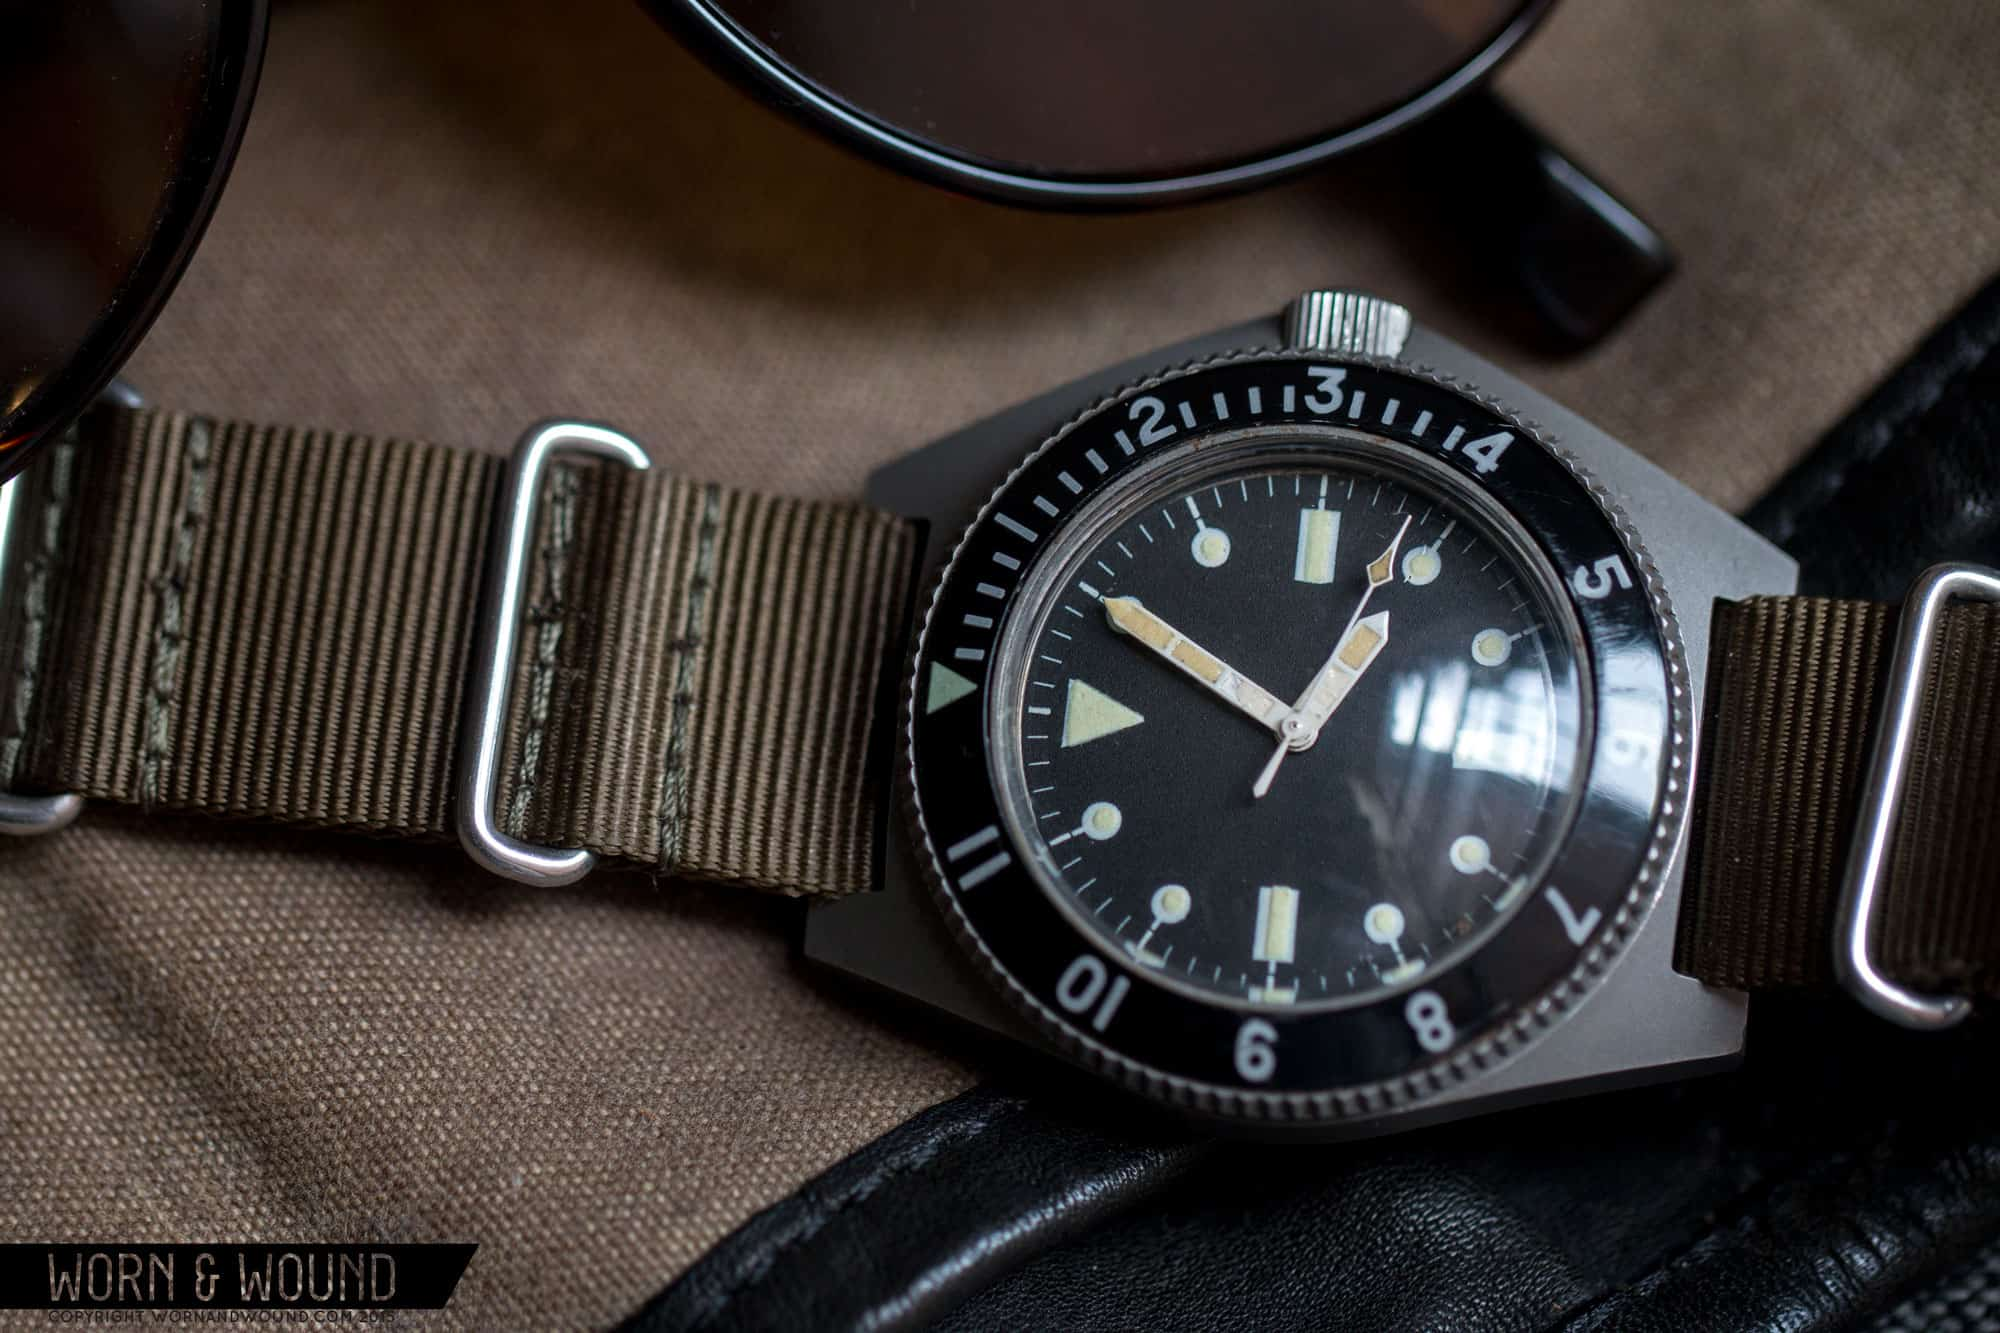 Benrus Type I and Type II MILW50717 Military Dive